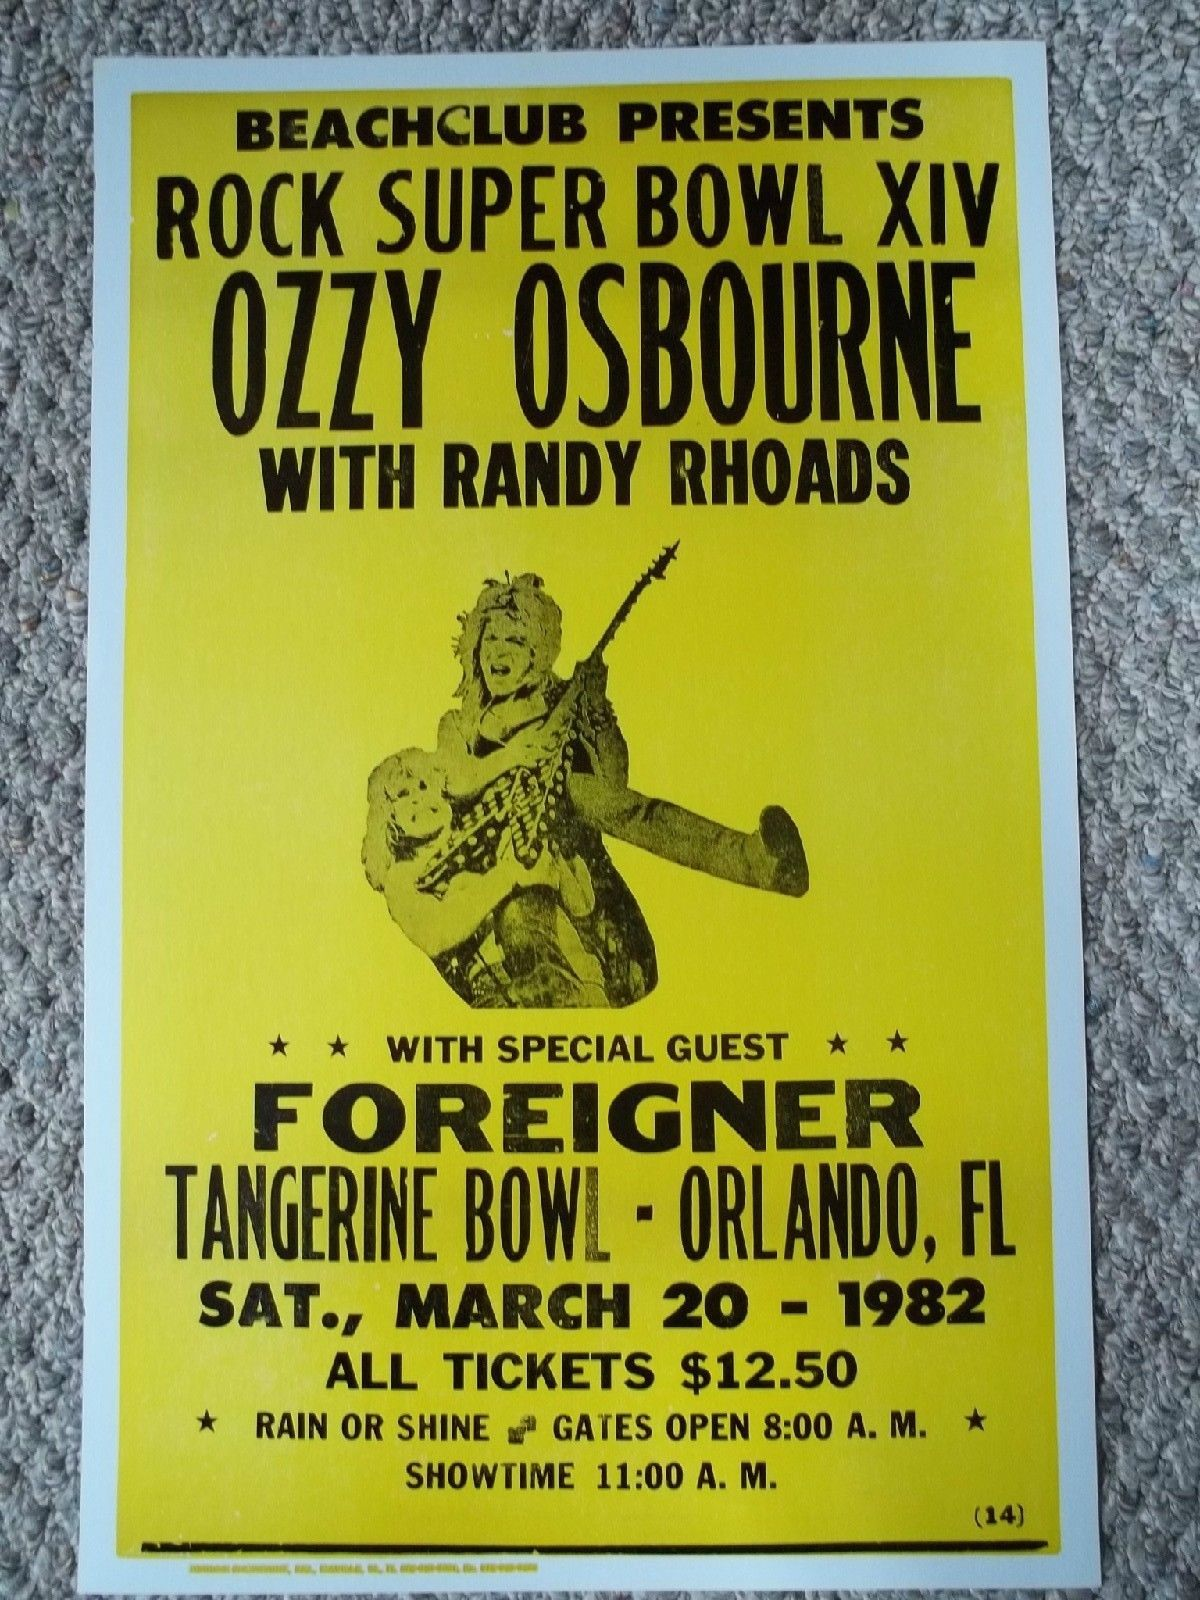 Ozzy Osbourne with Foreigner Playing in Orlando Poster | eBay